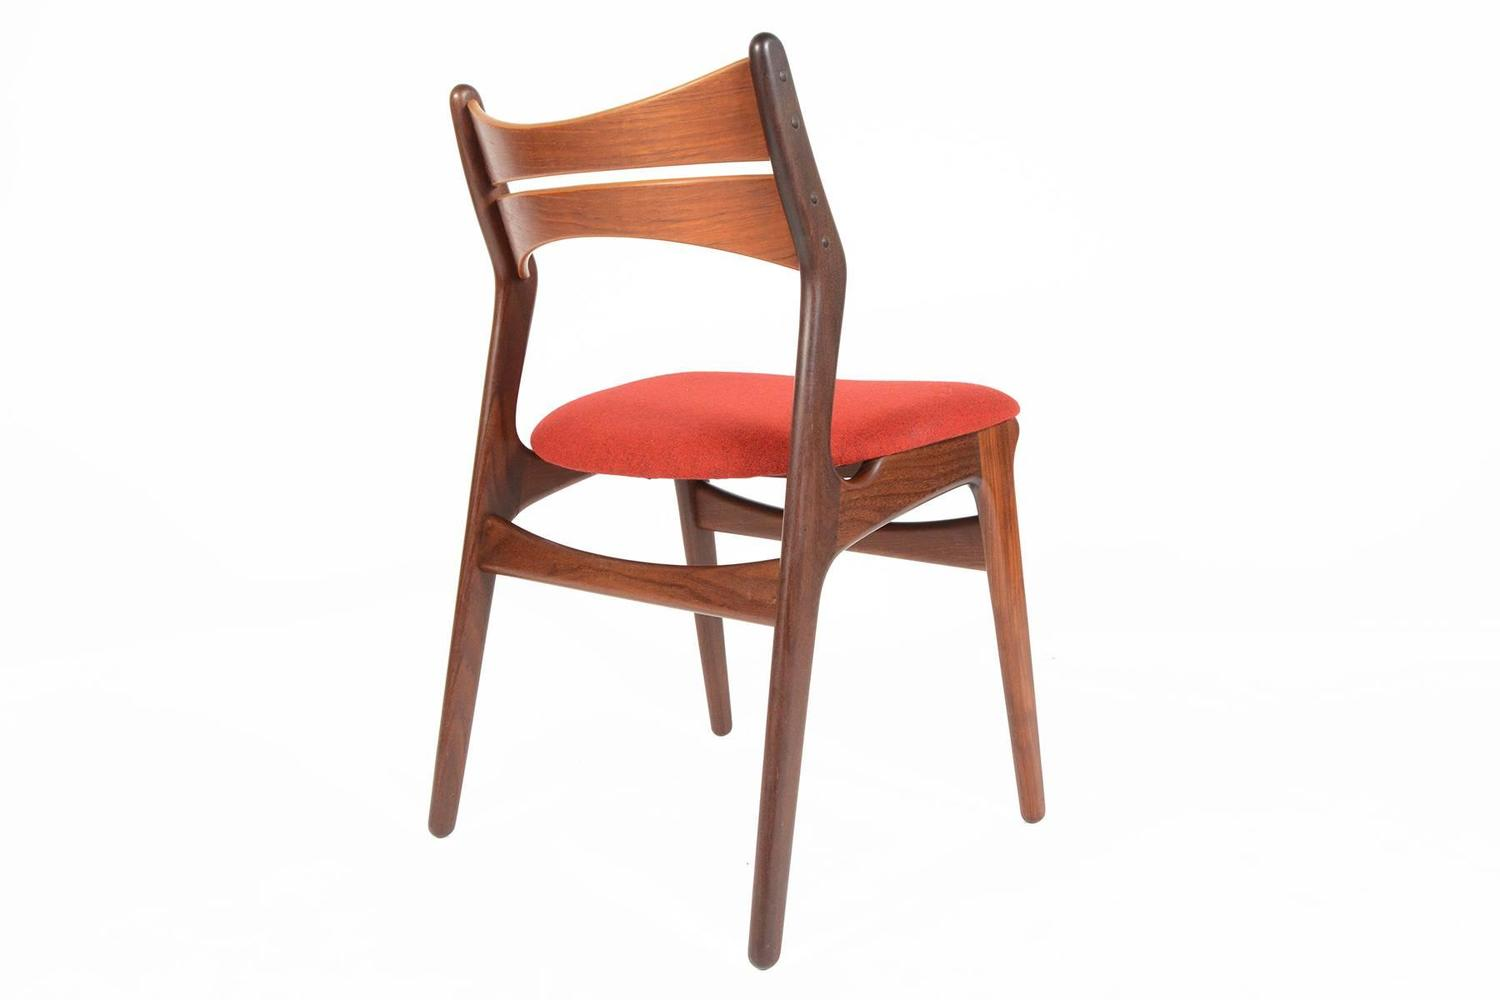 erik buck chairs floating fishing chair set of five model 310 dining in teak at